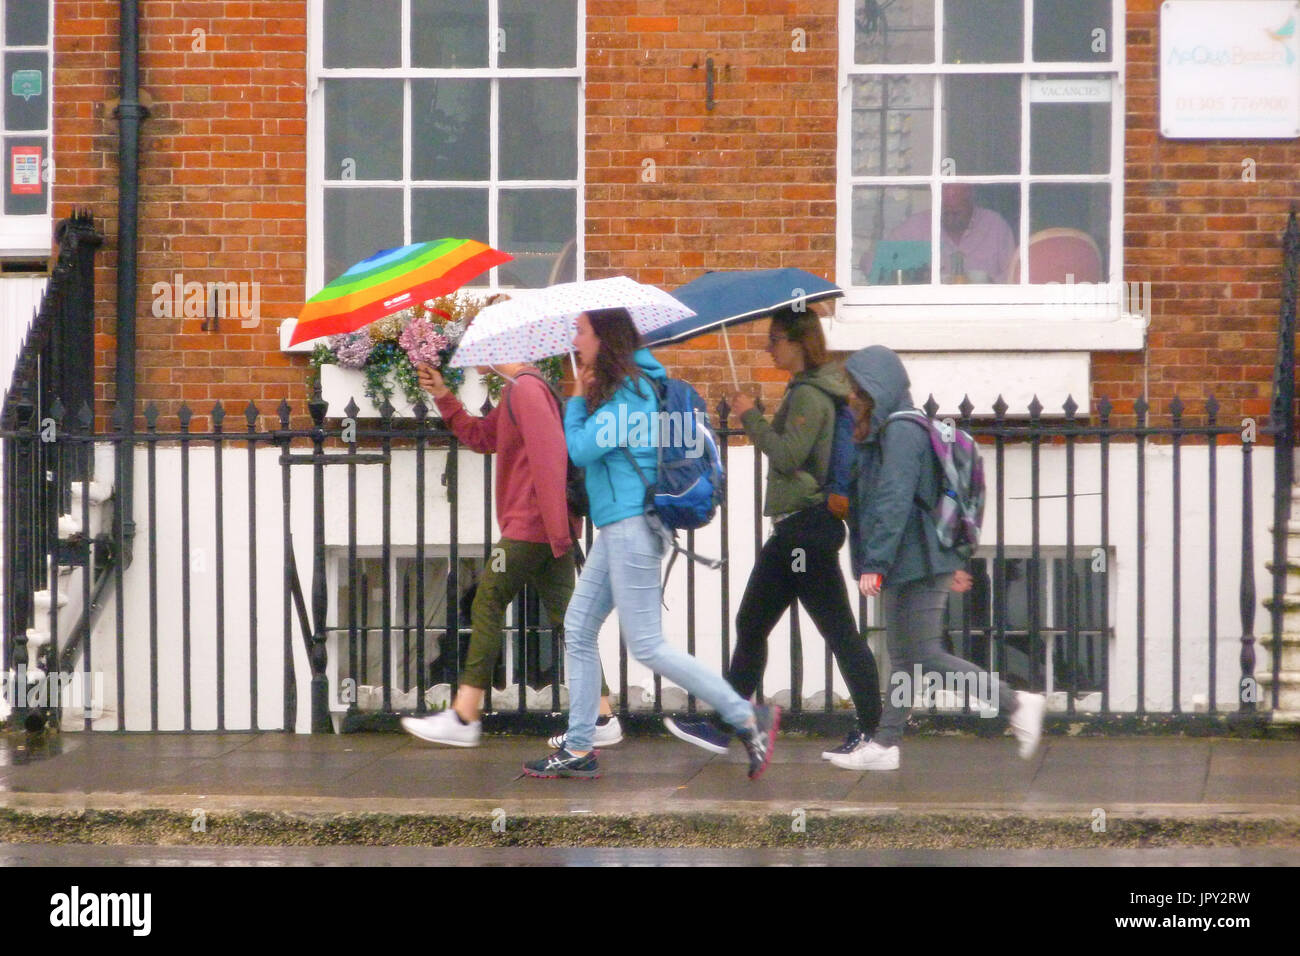 Weymouth, UK. 2nd Aug, 2017. Foreign students, here to study English, hurry to classes in the pouring rain Credit: stuart fretwell/Alamy Live News - Stock Image